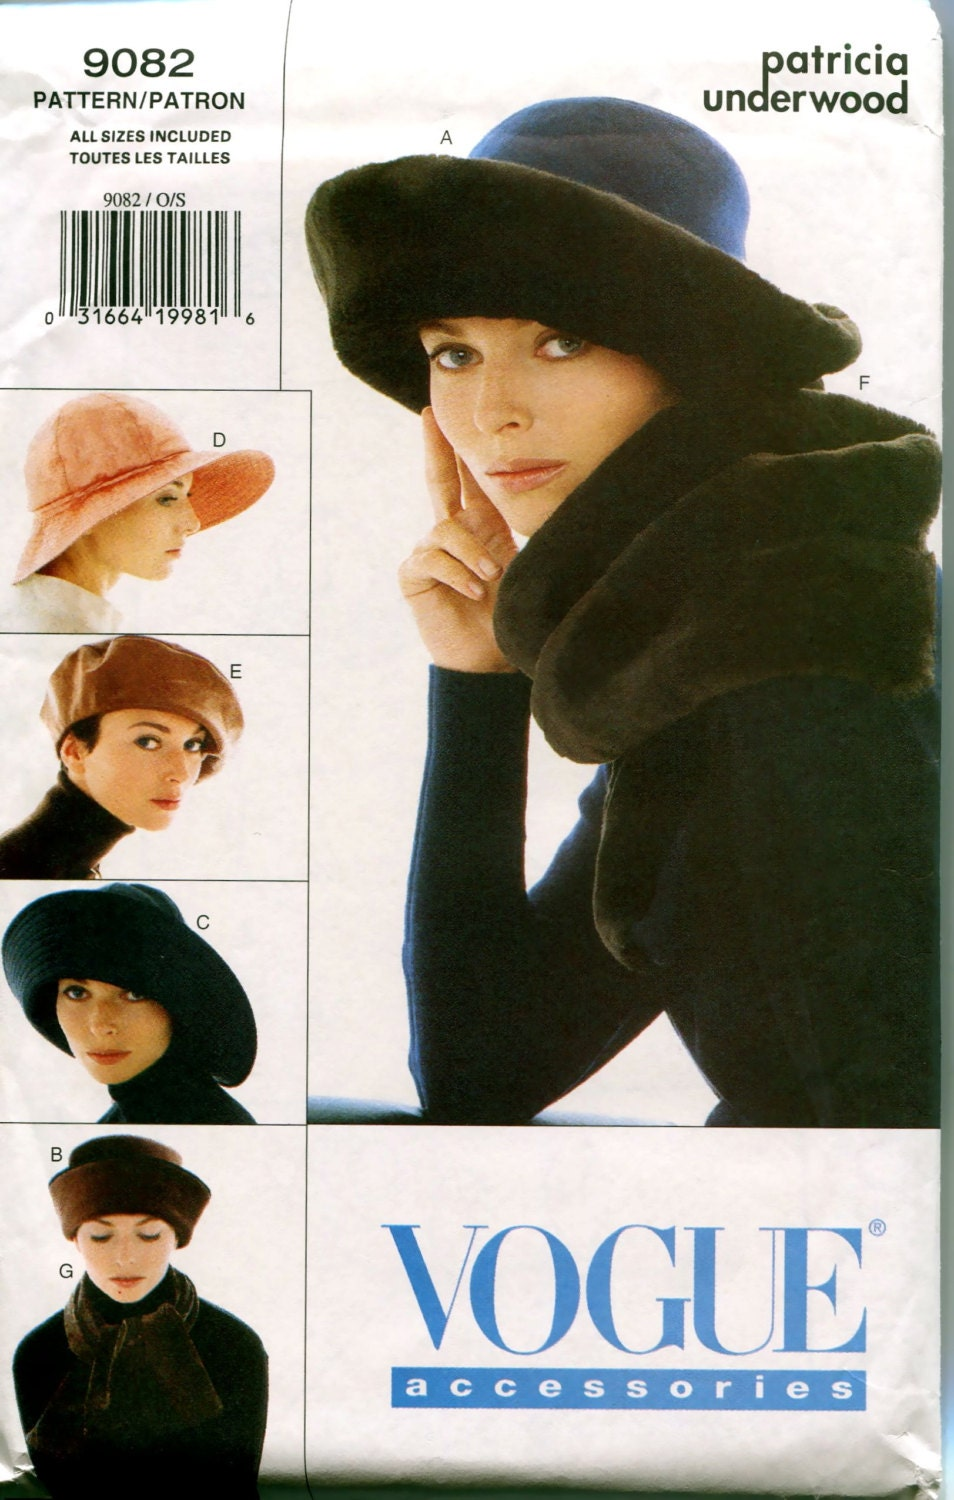 1990s Patricia Underwood hat pattern - Vogue 9082